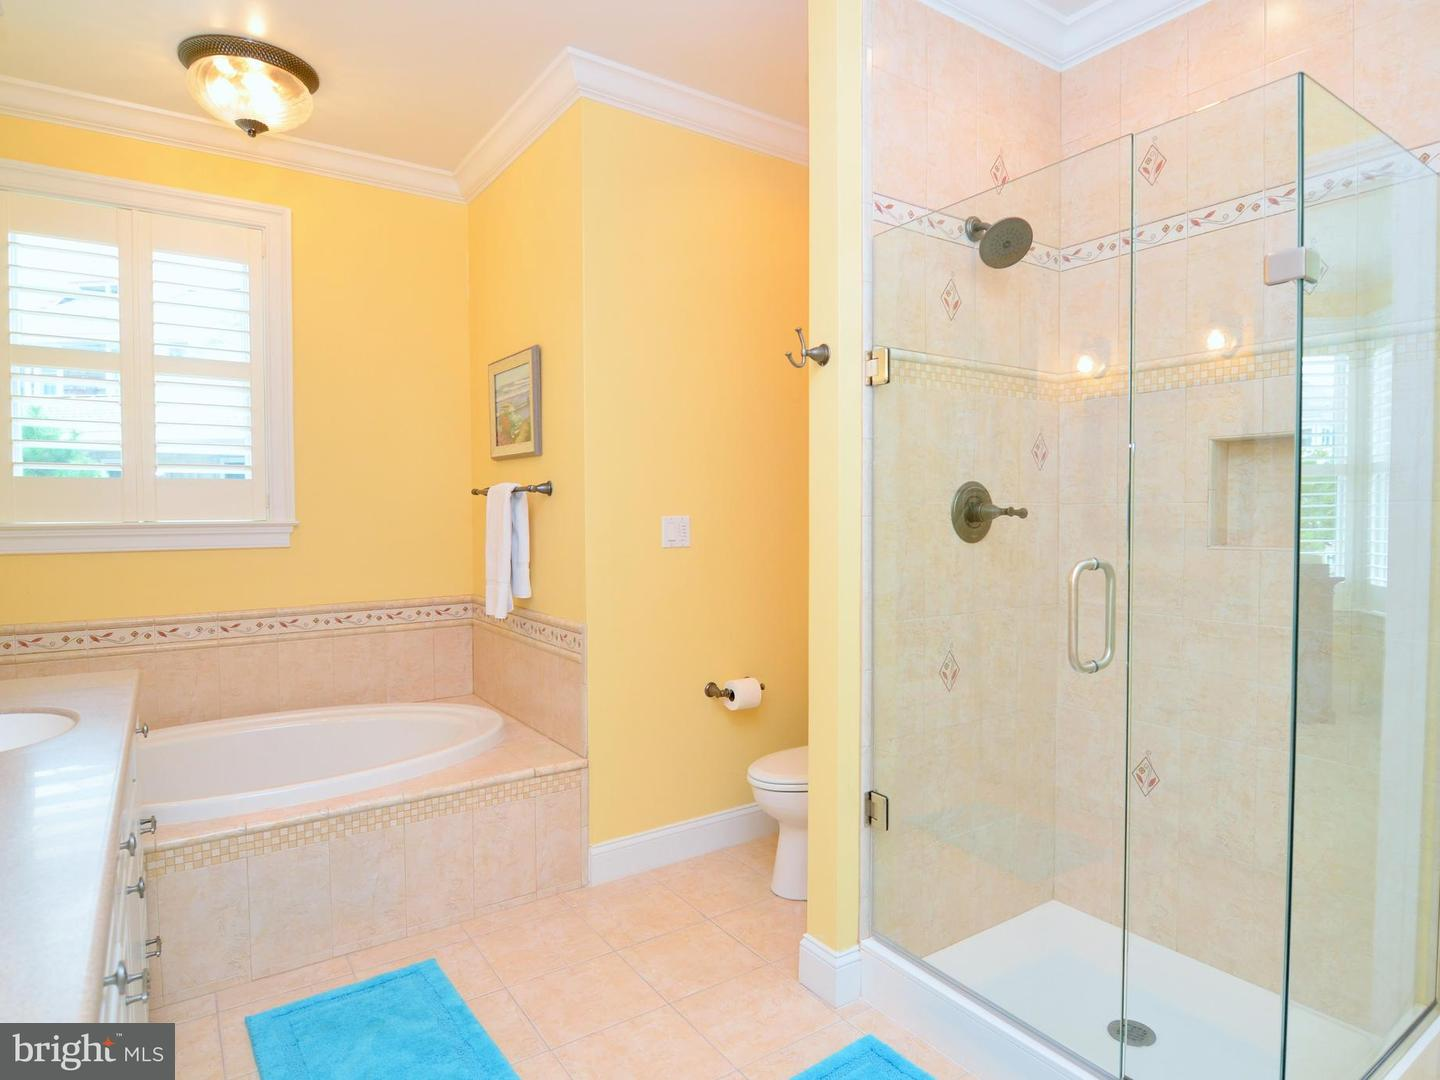 1002293530-300500807574-2018-09-25-15-08-25 31 Hall Ave | Rehoboth Beach, De Real Estate For Sale | MLS# 1002293530  - Suzanne Macnab